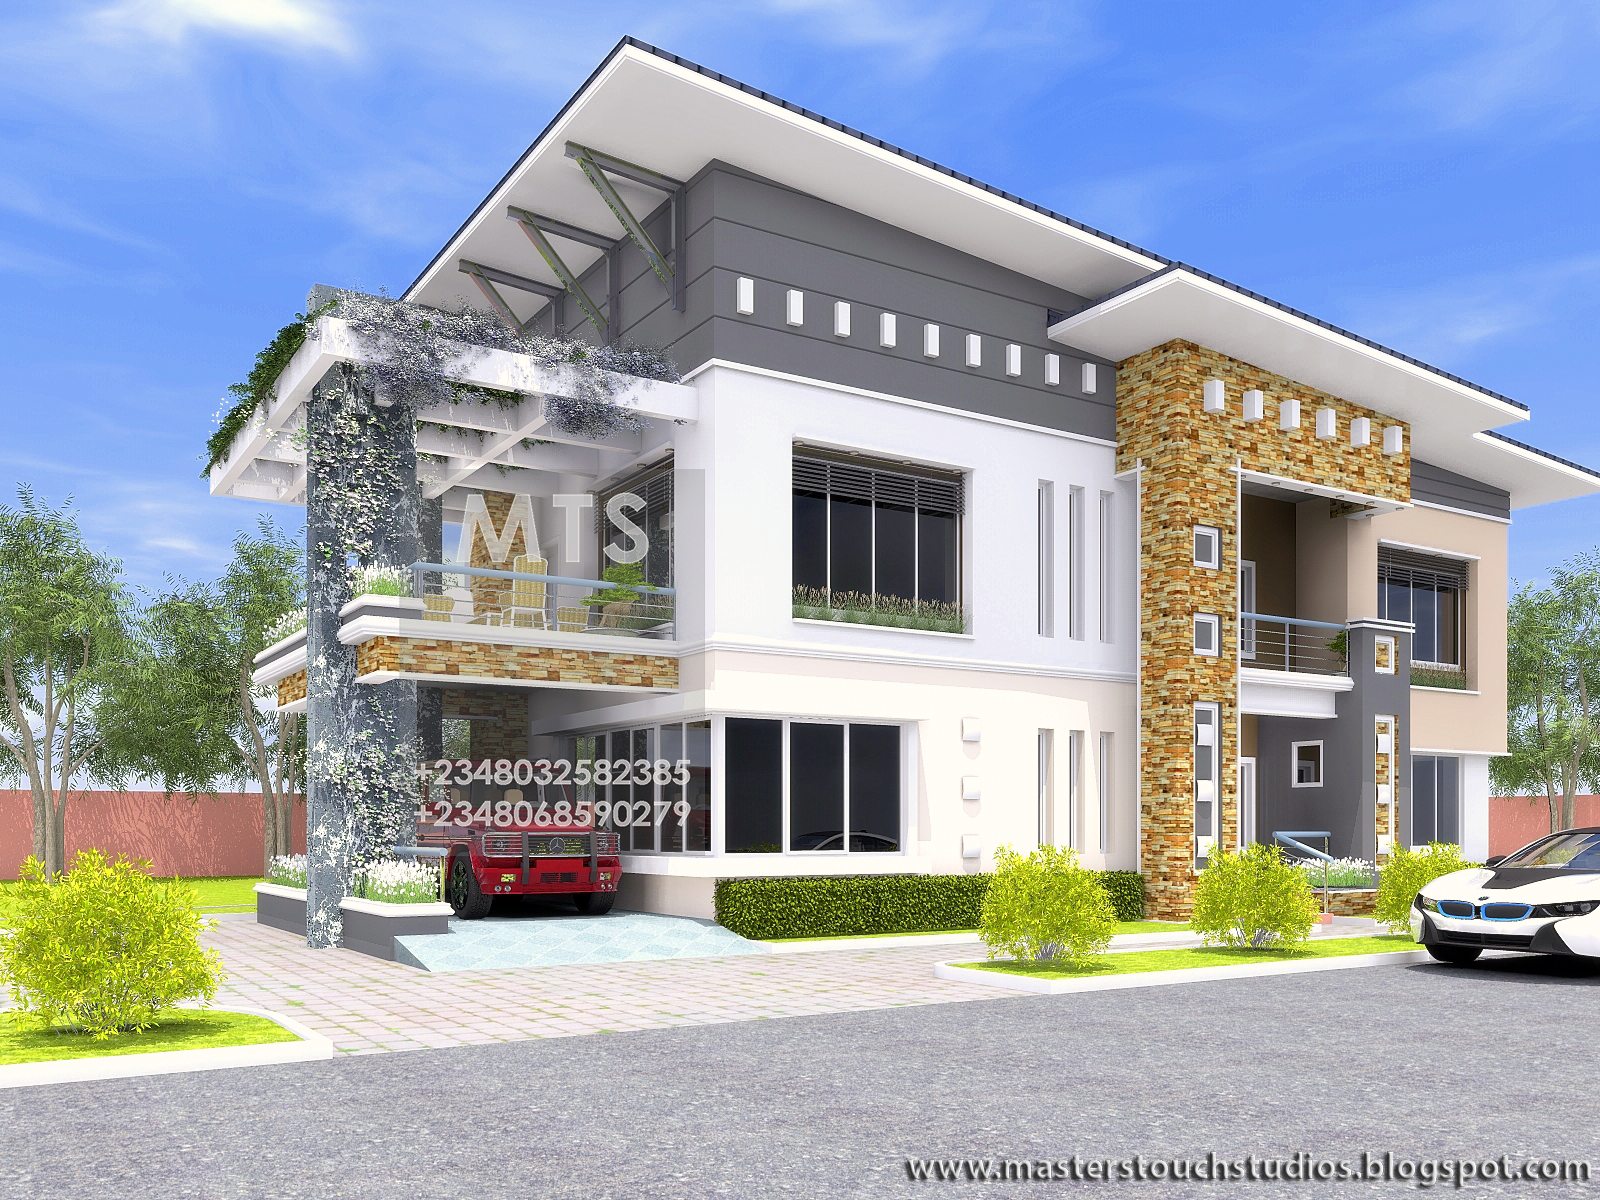 Engr Eddy 6 Bedroom Duplex Residential Homes And Public Designs